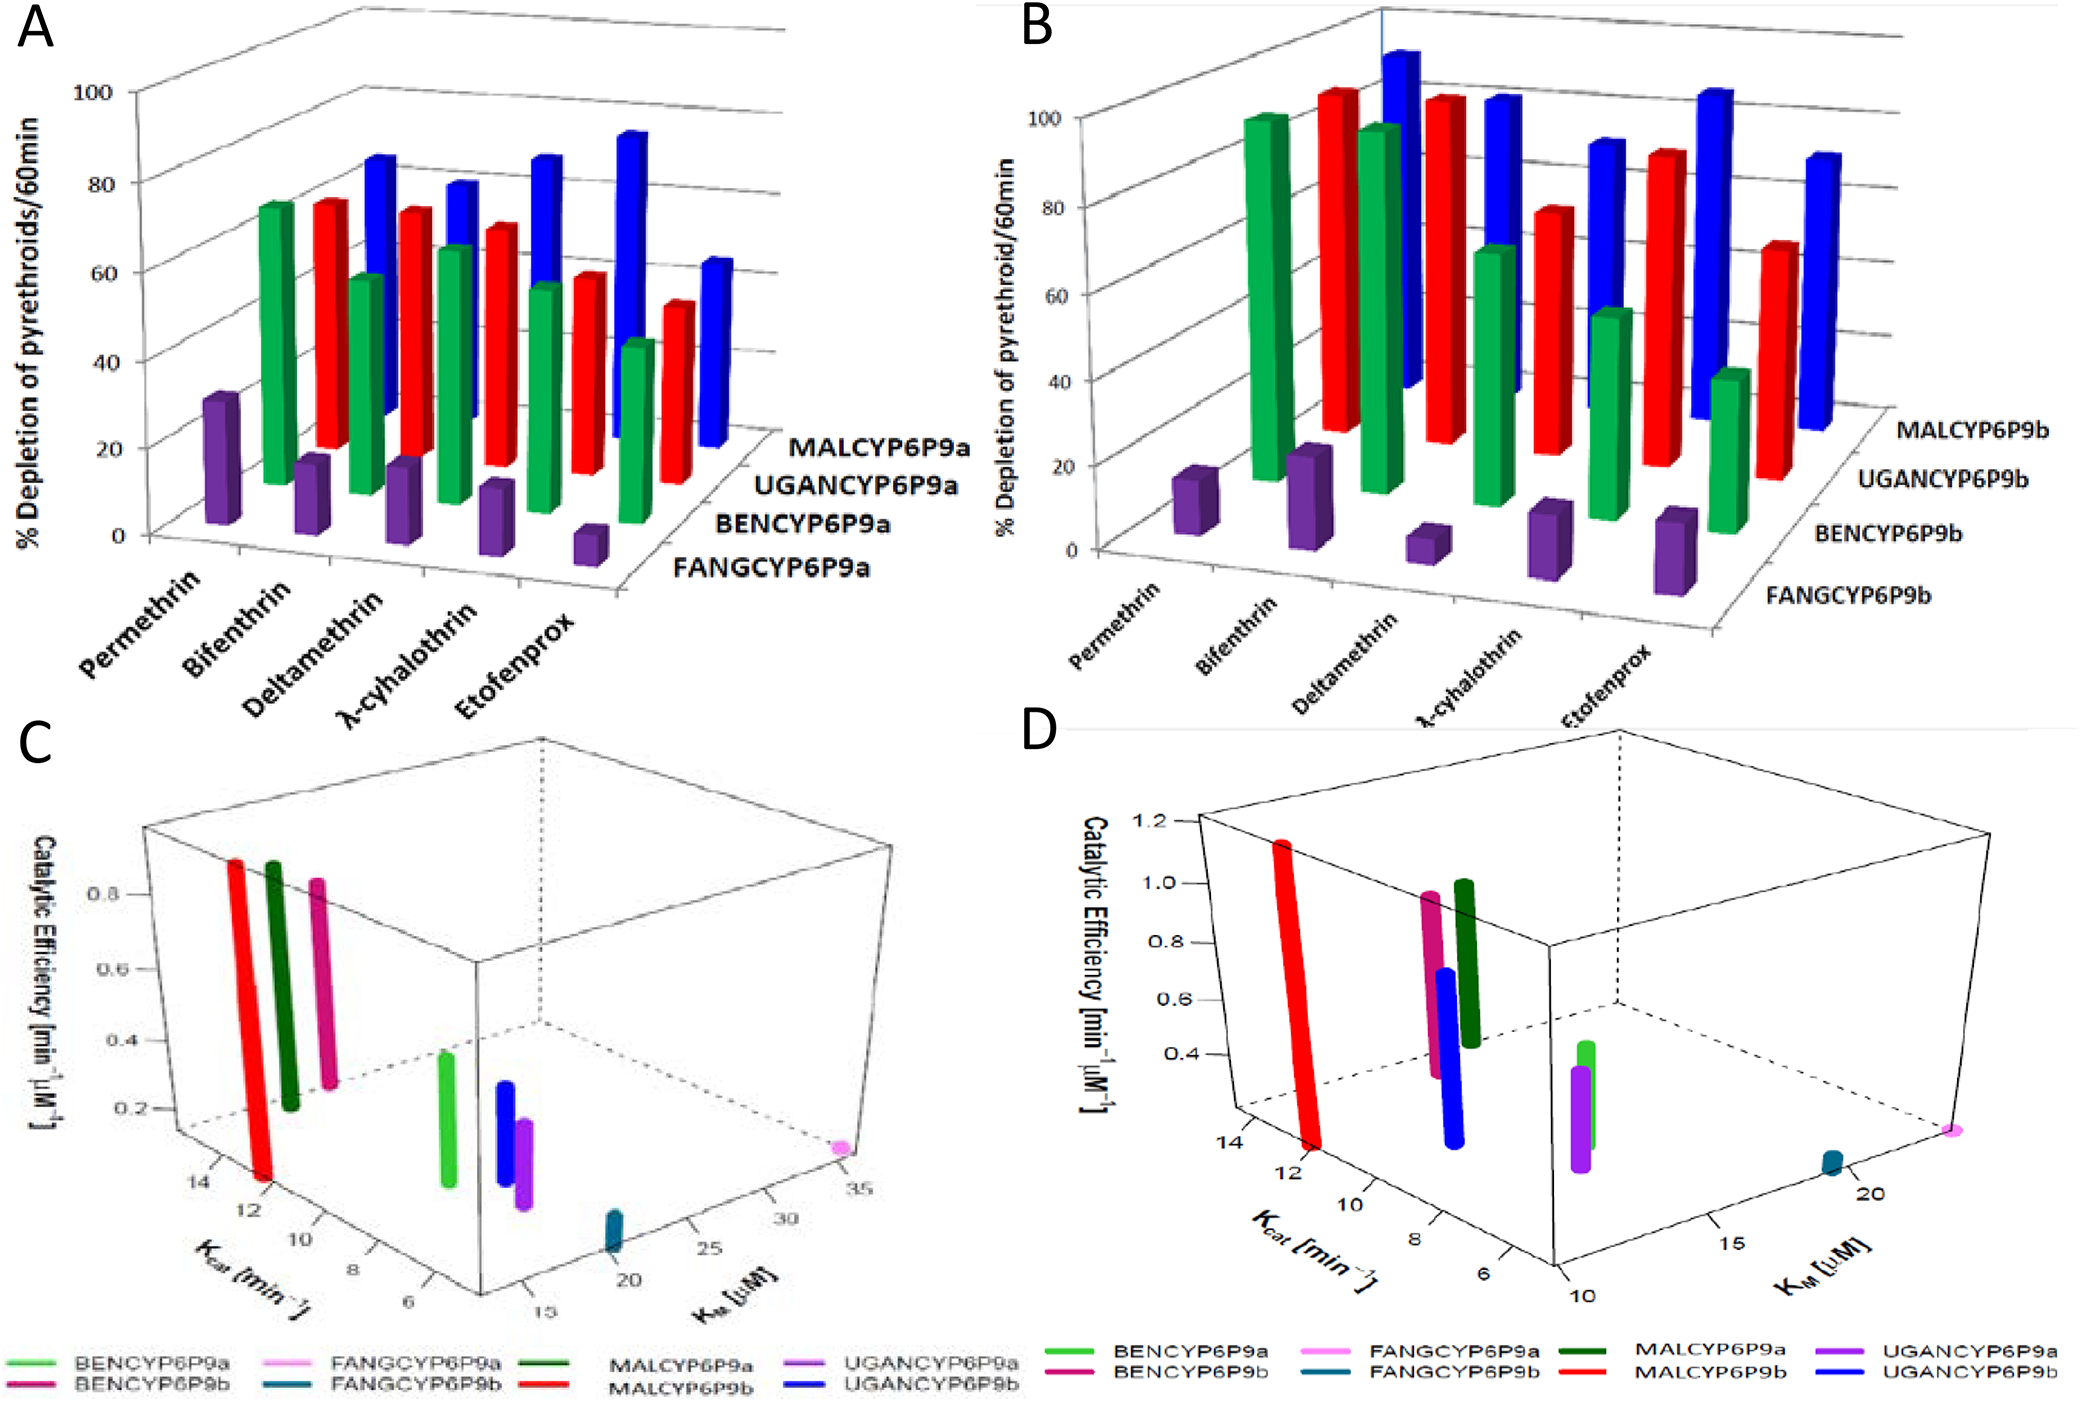 Substrates depletion assay results and kinetic profiles of recombinant CYP6P9a and CYP6P9b.